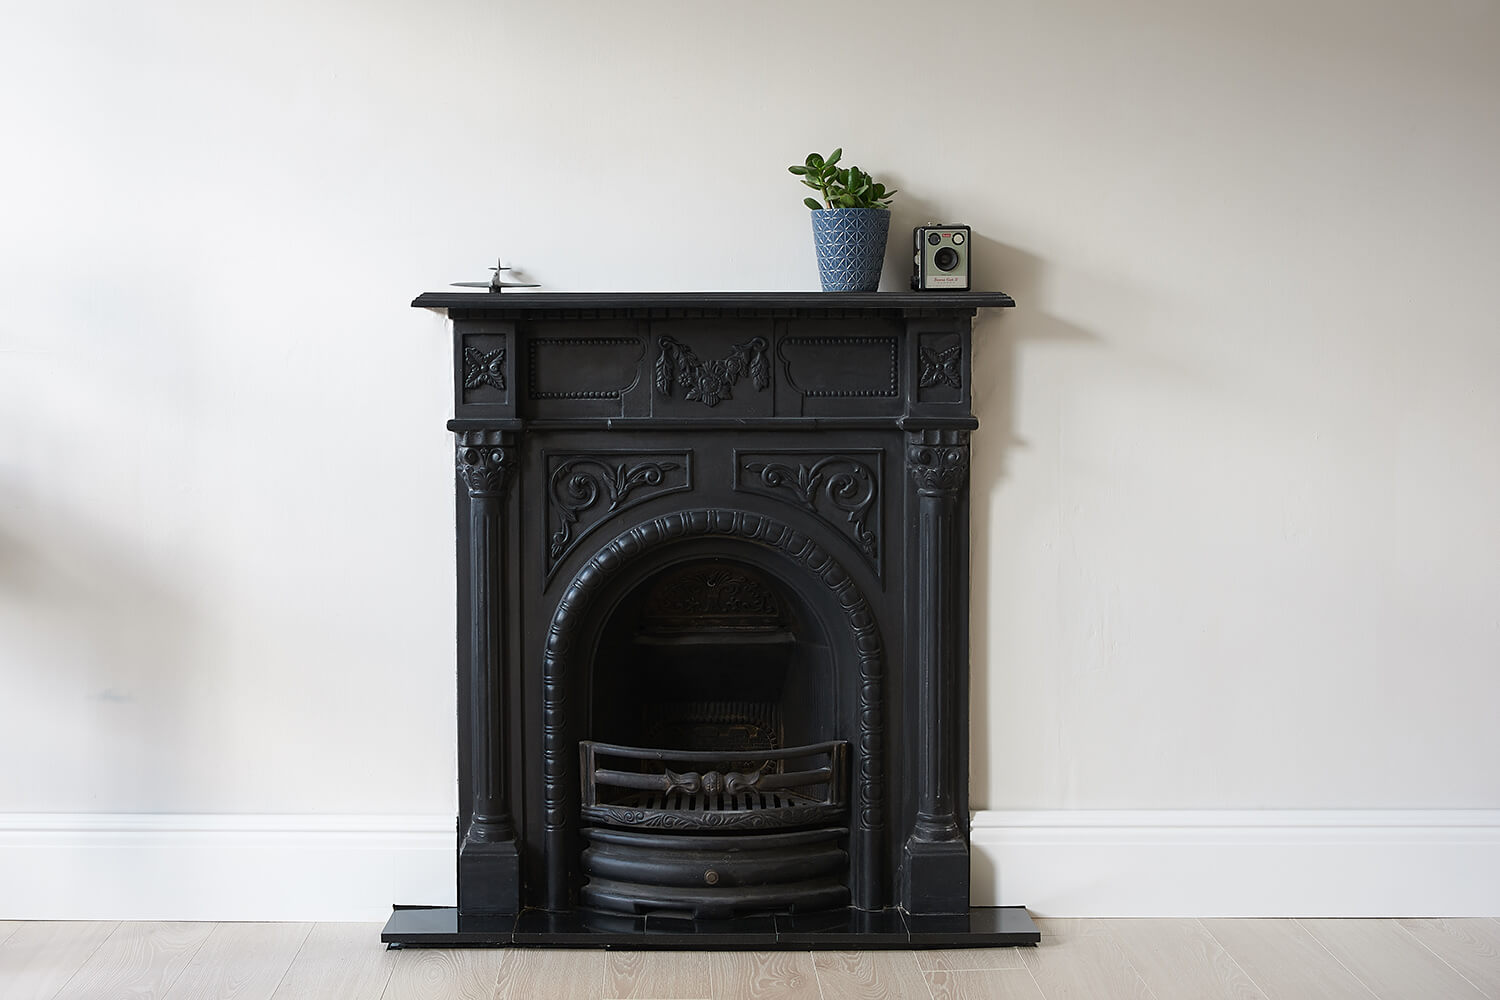 The studio's cast iron fireplace, with a few props on the mantlepiece